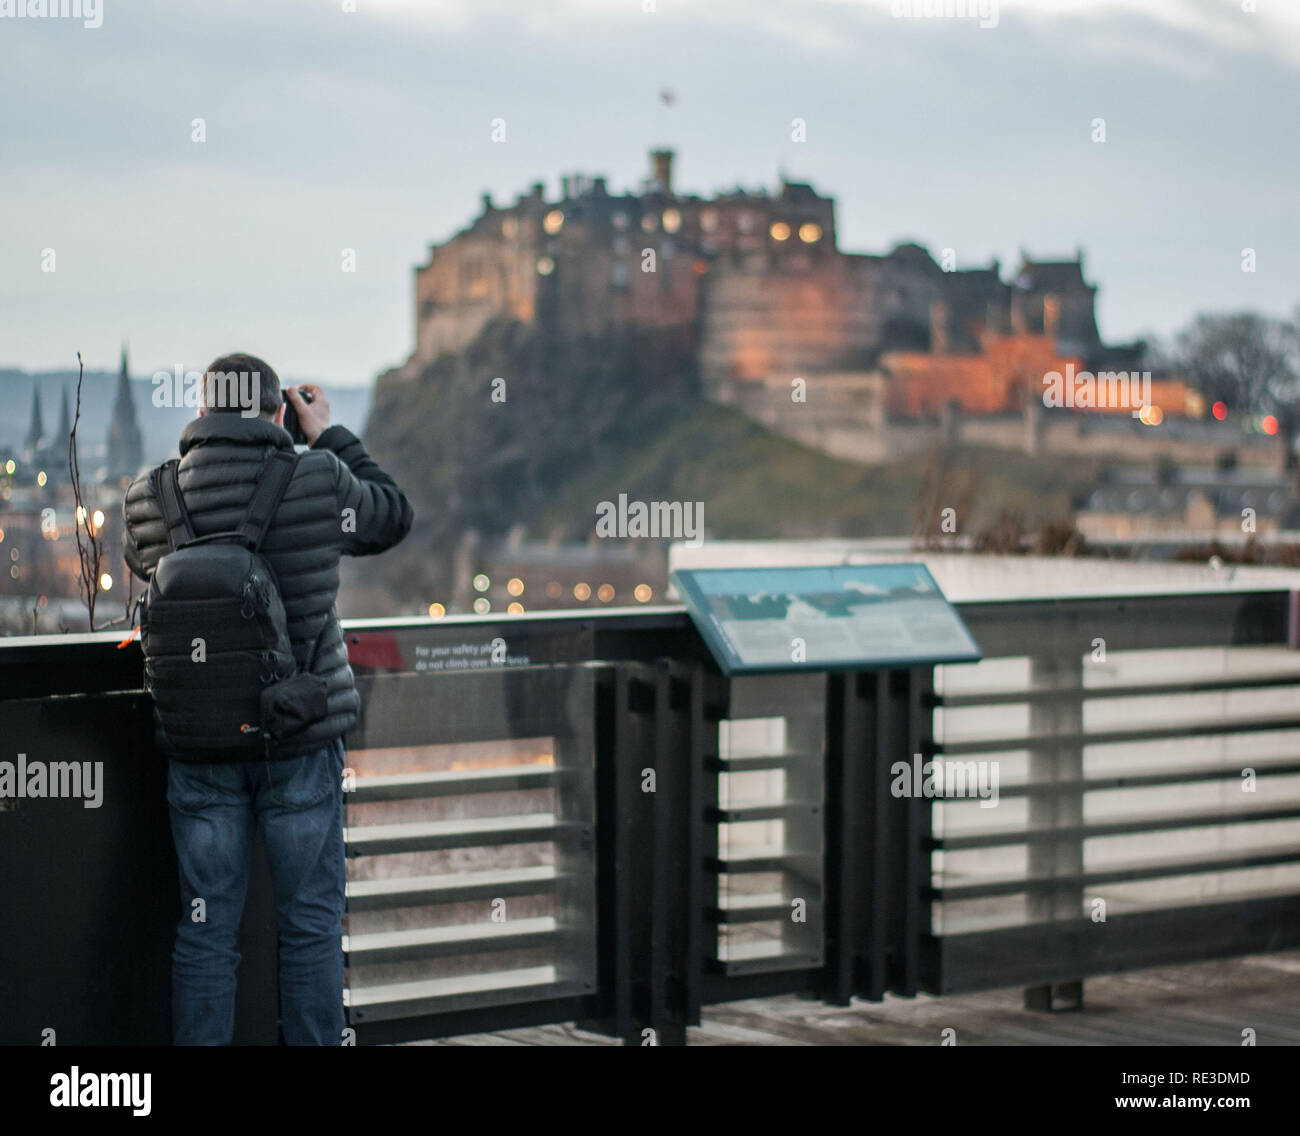 A photographer (foreground) taking a picture of Edinburgh's Castle from a roof top terrace. Travel photography. Tourism Stock Photo